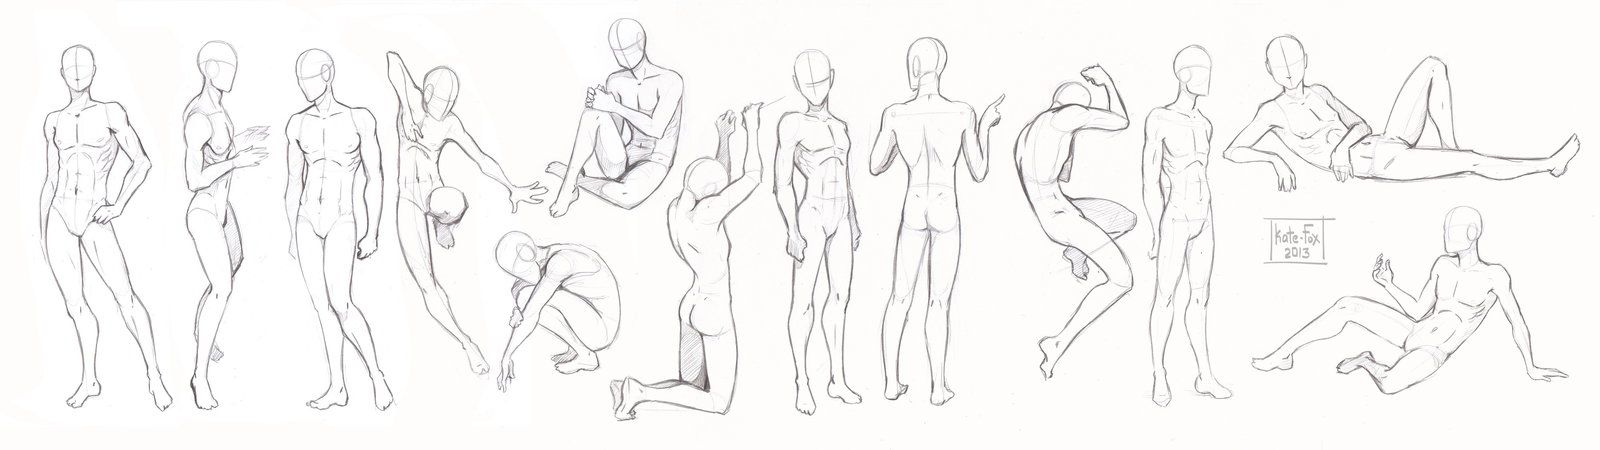 Pose study2 by Kate-FoX.deviantart.com on @deviantART | Poses ...